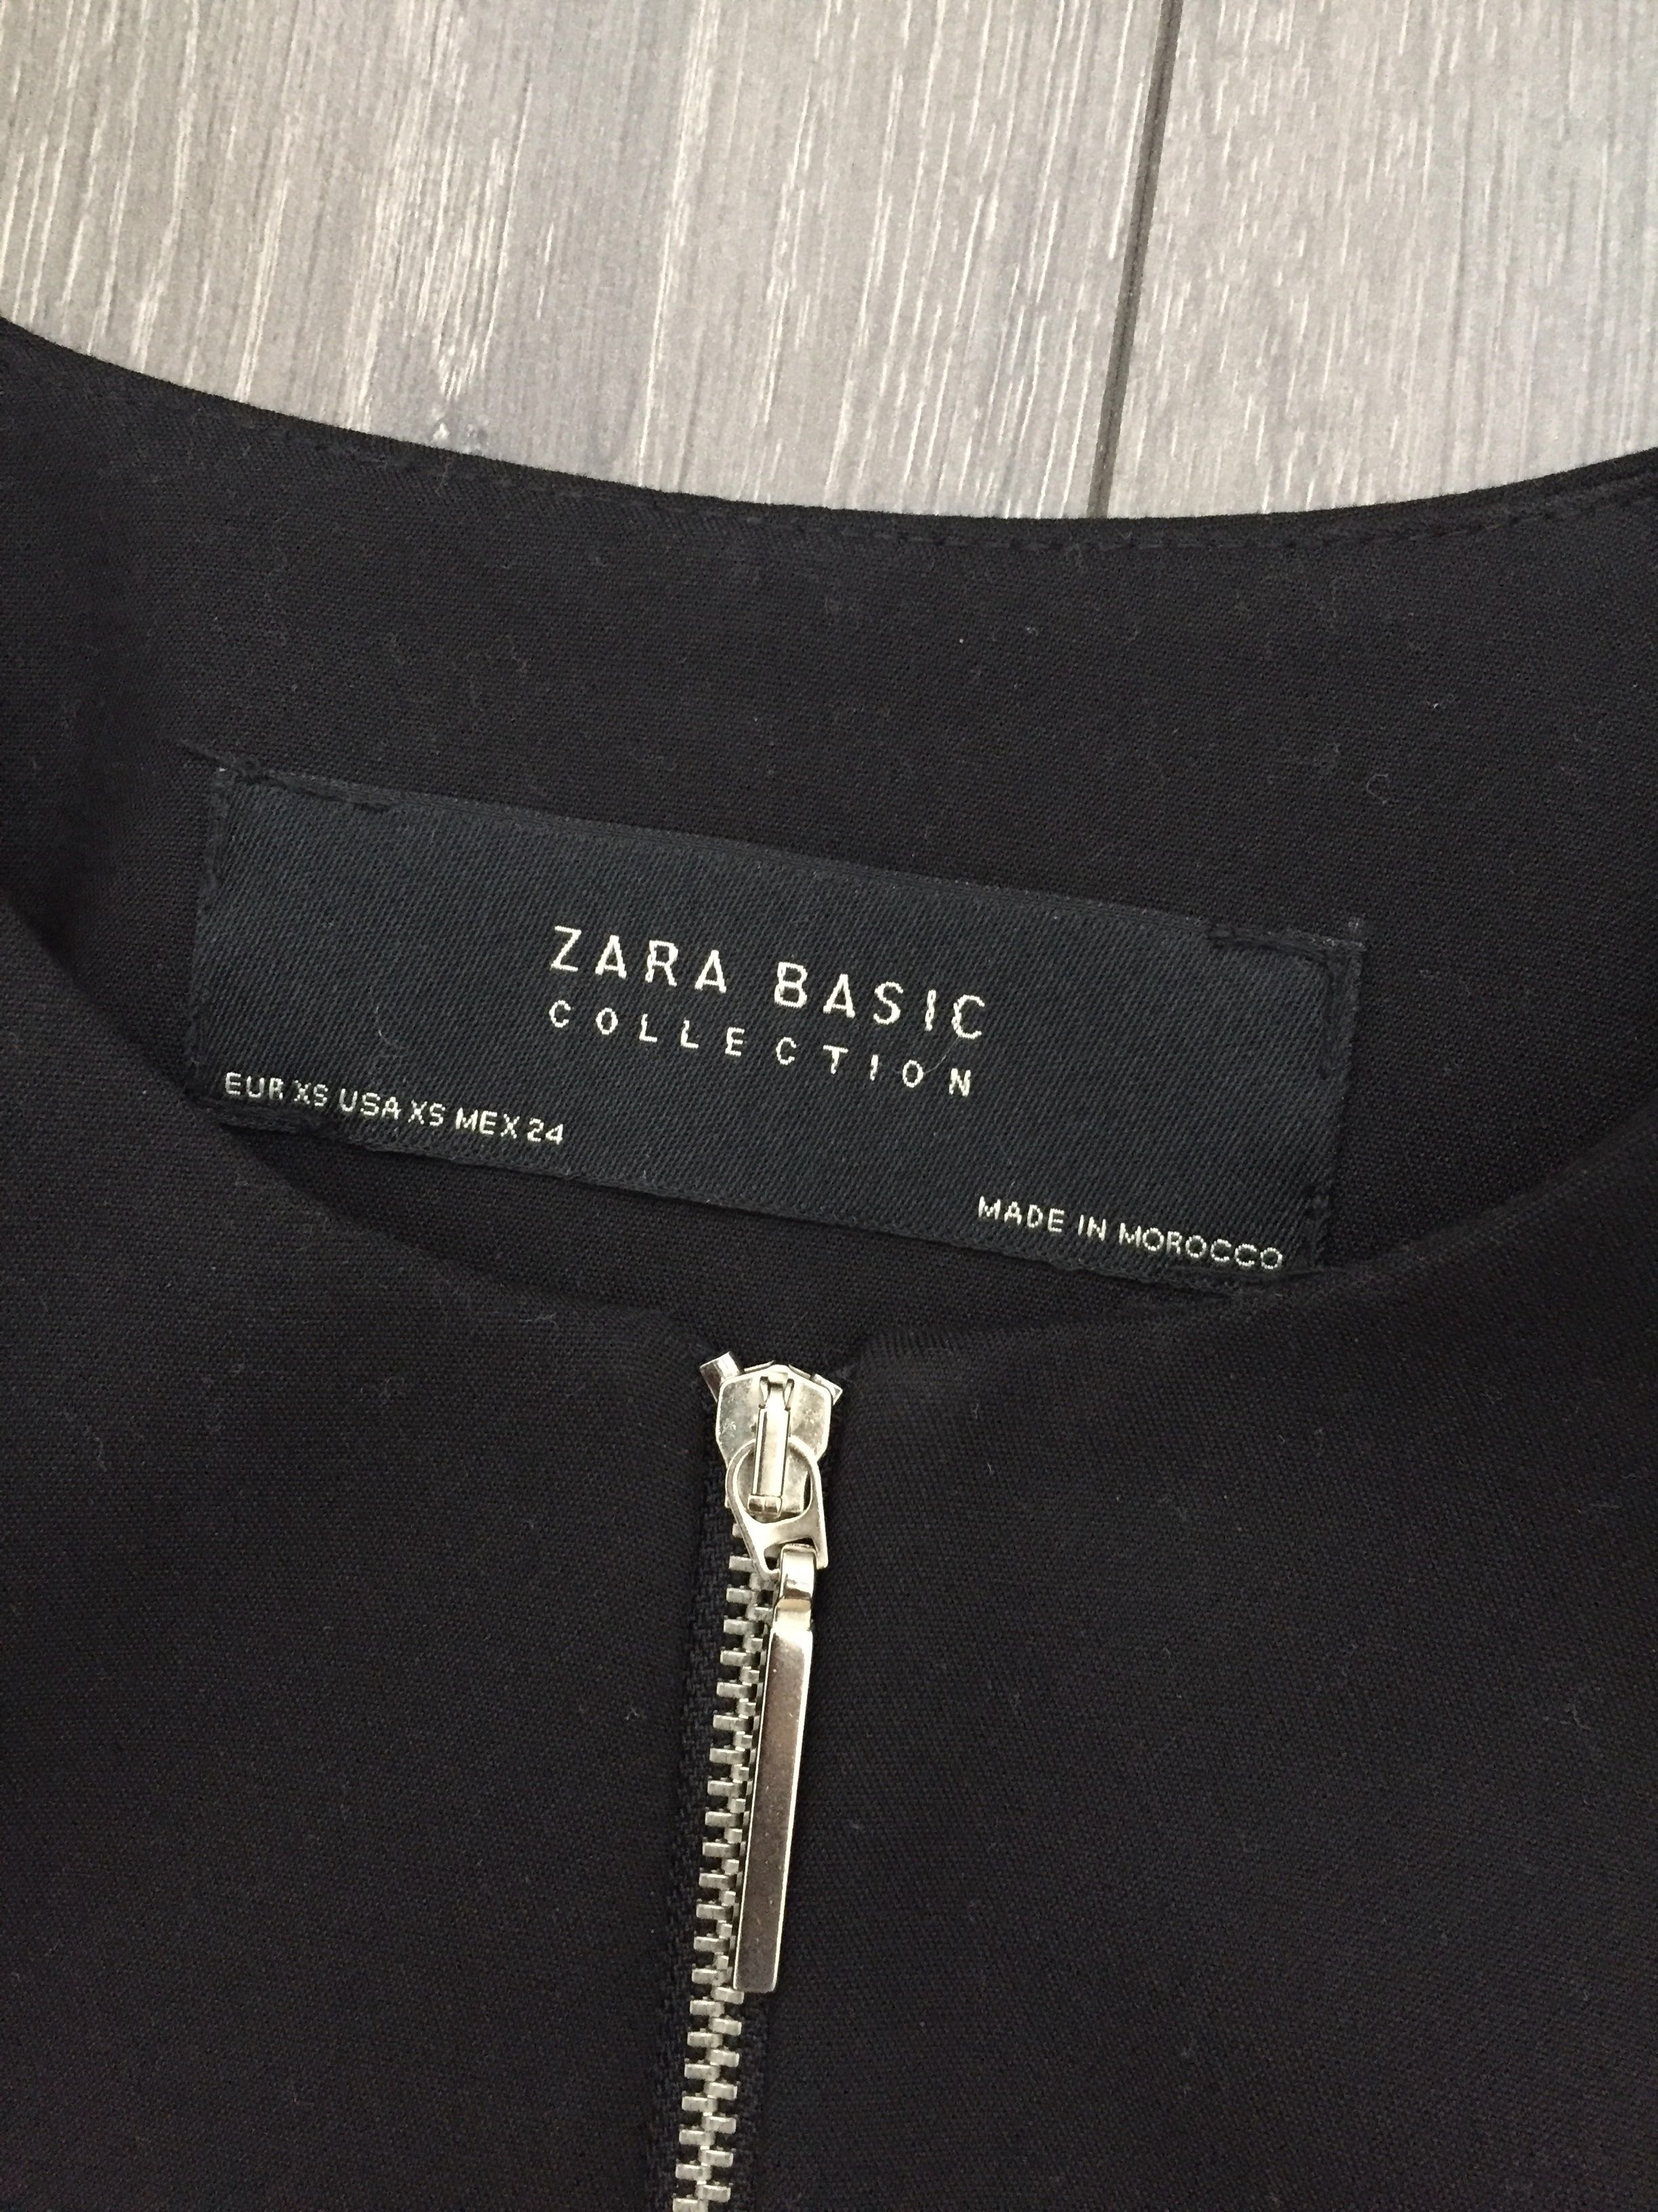 9d960bb7 Brand New Zara Puff Sleeves Coat Black Size XS, Women's Fashion, Clothes,  Outerwear on Carousell